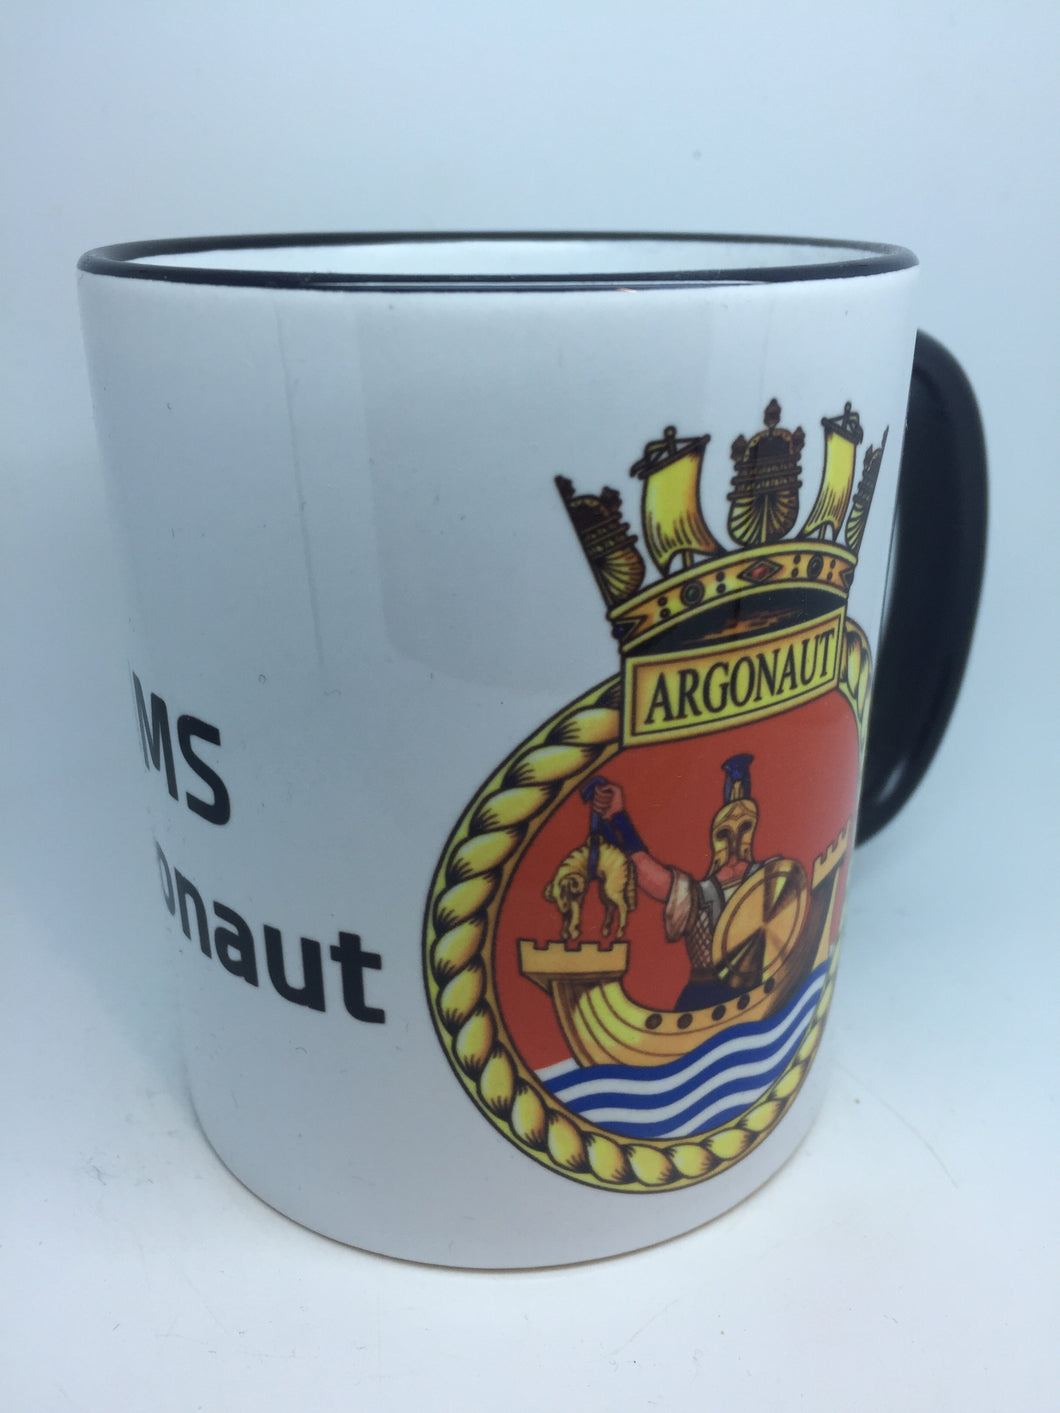 HMS Argonaut Coffee/Travel Mugs